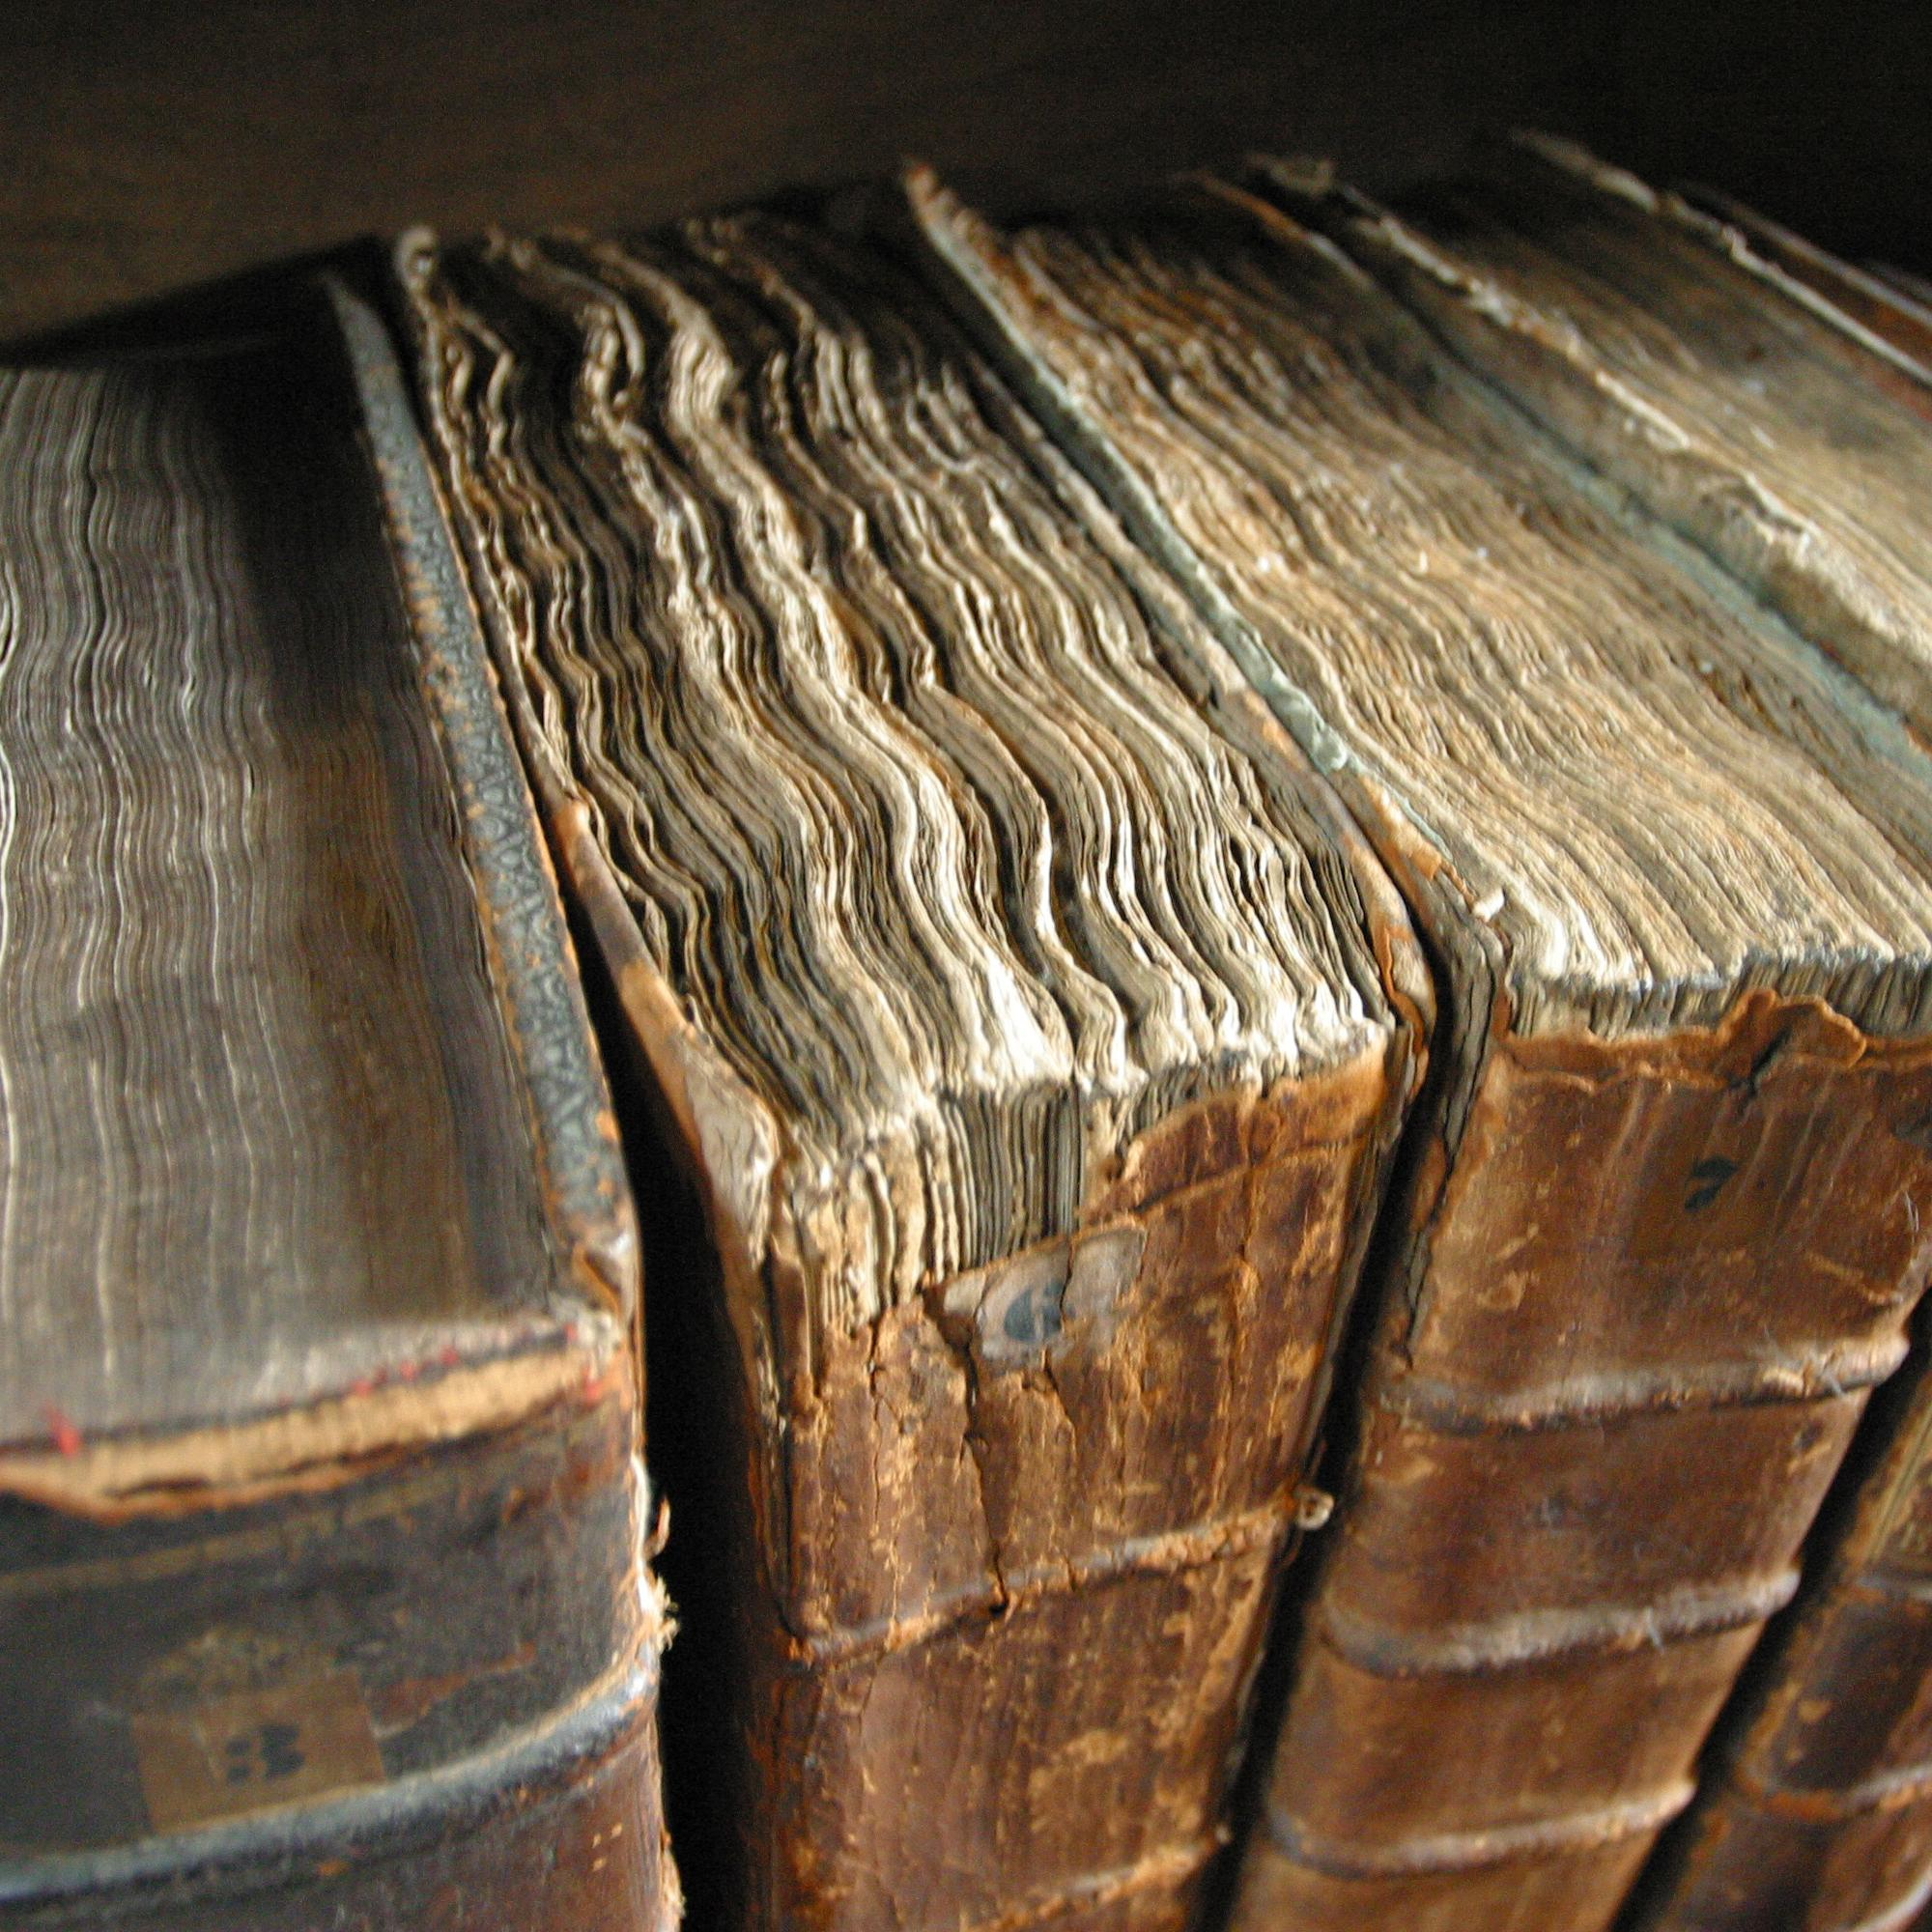 http://upload.wikimedia.org/wikipedia/commons/a/a4/Old_book_bindings_cropped.jpg